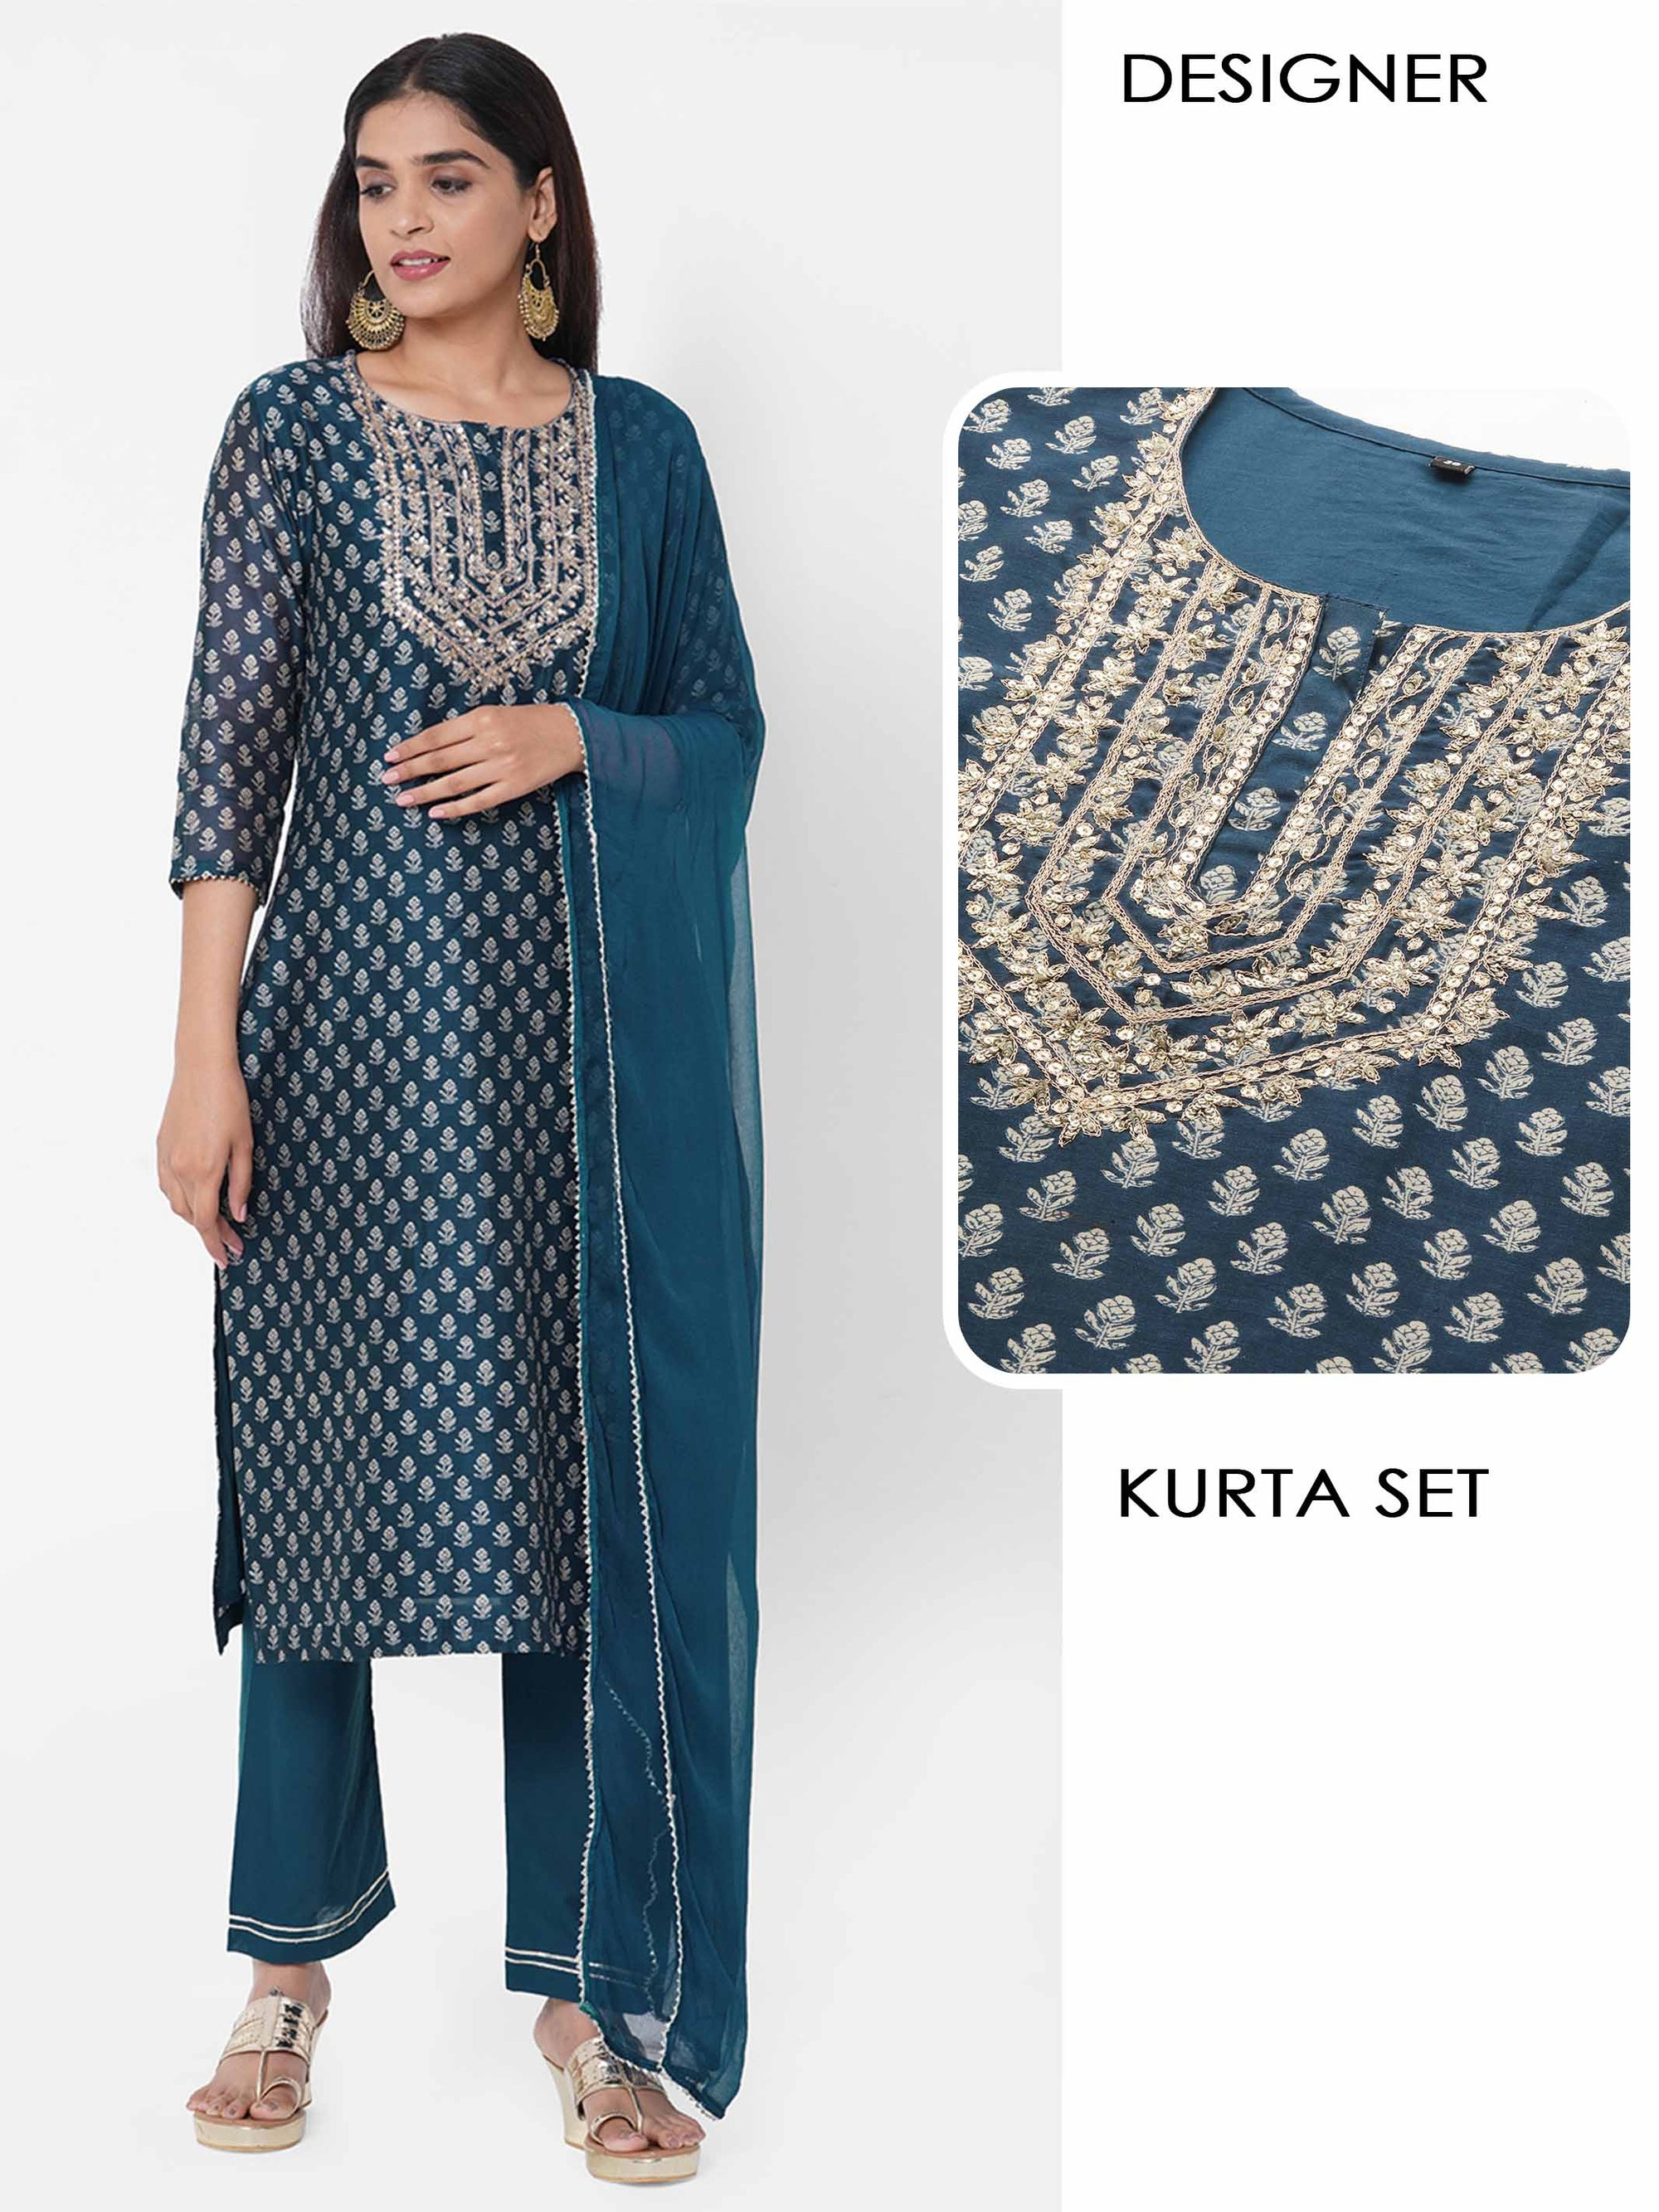 Floral Printed & Embellished Kurta with Solid Pant with solid Dupatta - Blue